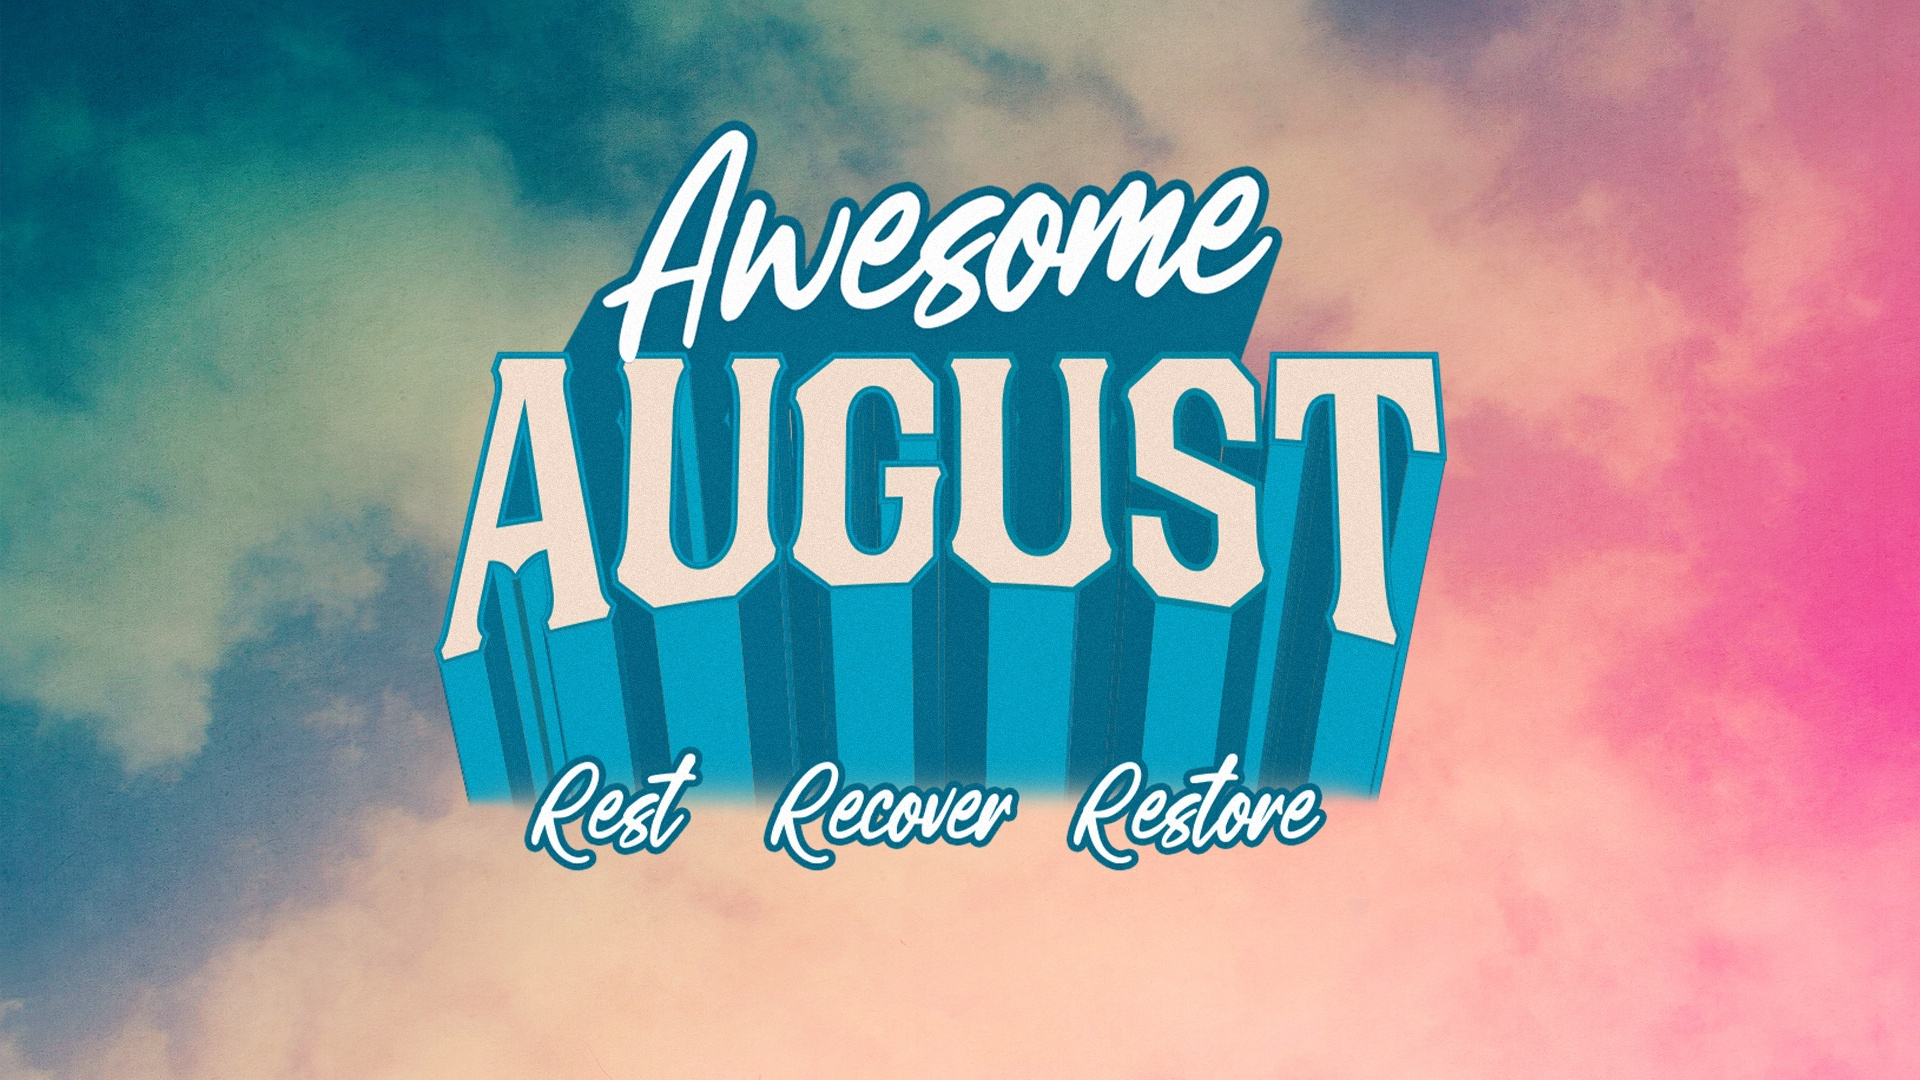 Awesome August: rest, recover, restore